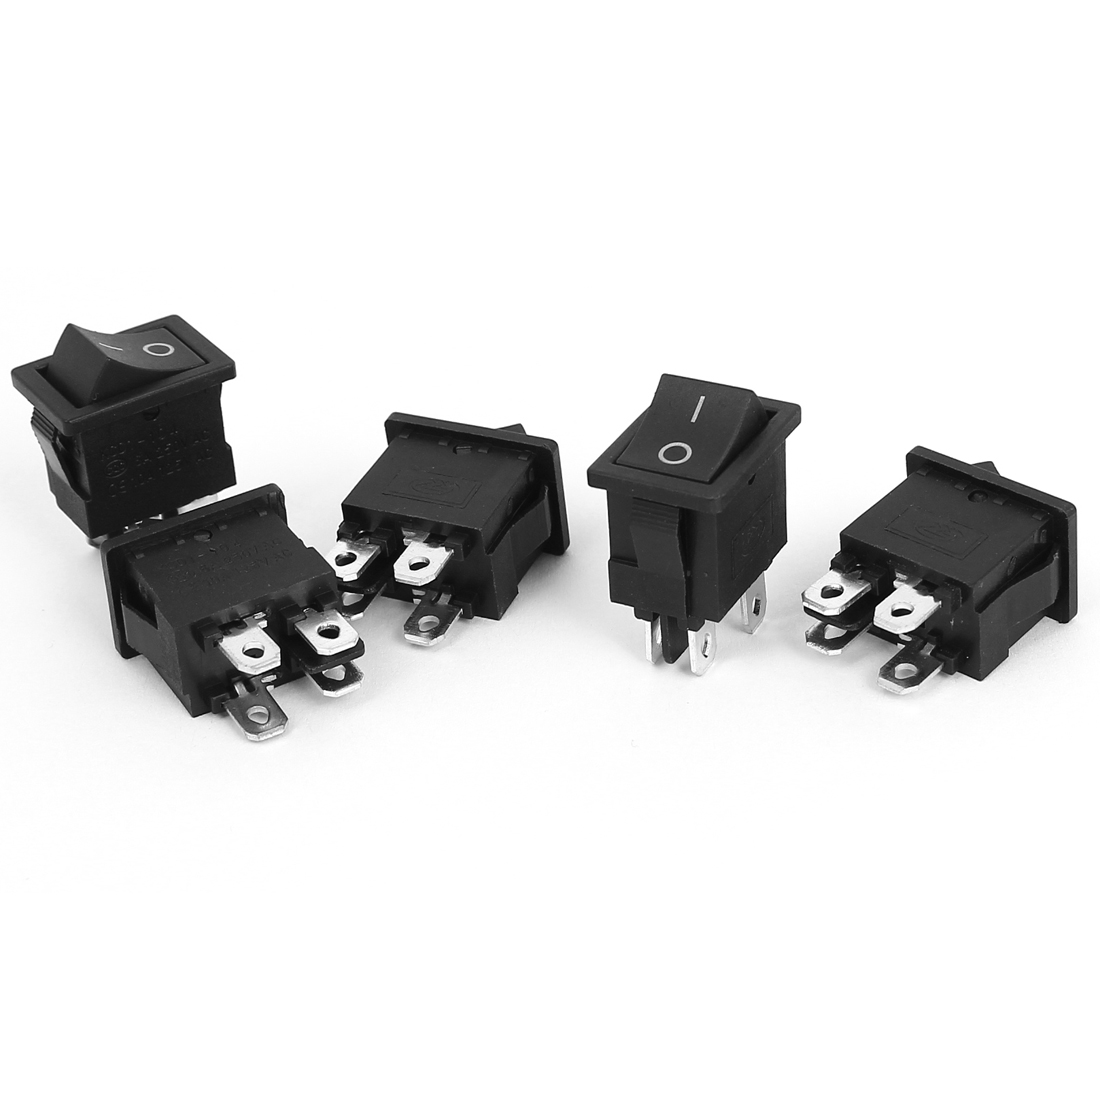 AC 250V/125V 6A/10A DPST ON/OFF 4 Pins Snap in Boat Rocker Switch 5PCS